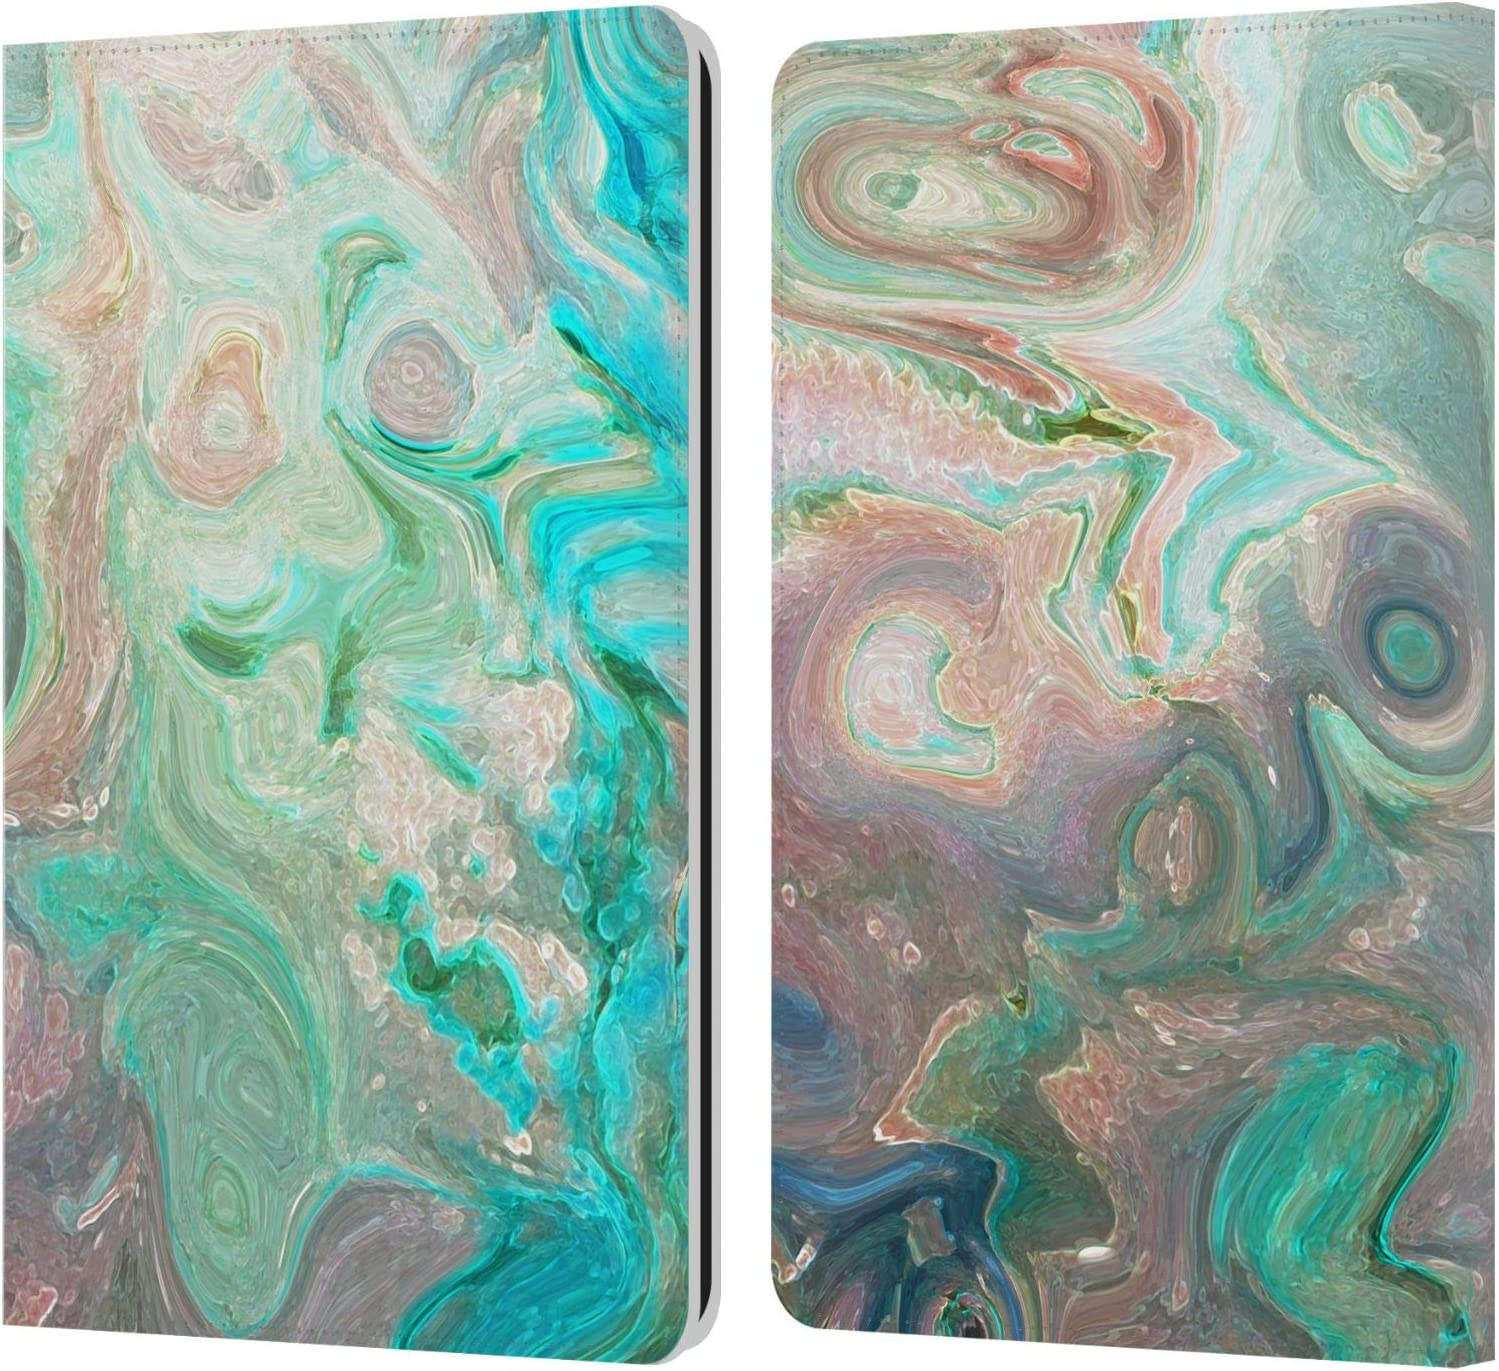 Head Case Designs Officially Licensed Catspaws The Blue Nature & Colours Leather Book Wallet Case Cover Compatible with Kindle Paperwhite 1/2 / 3